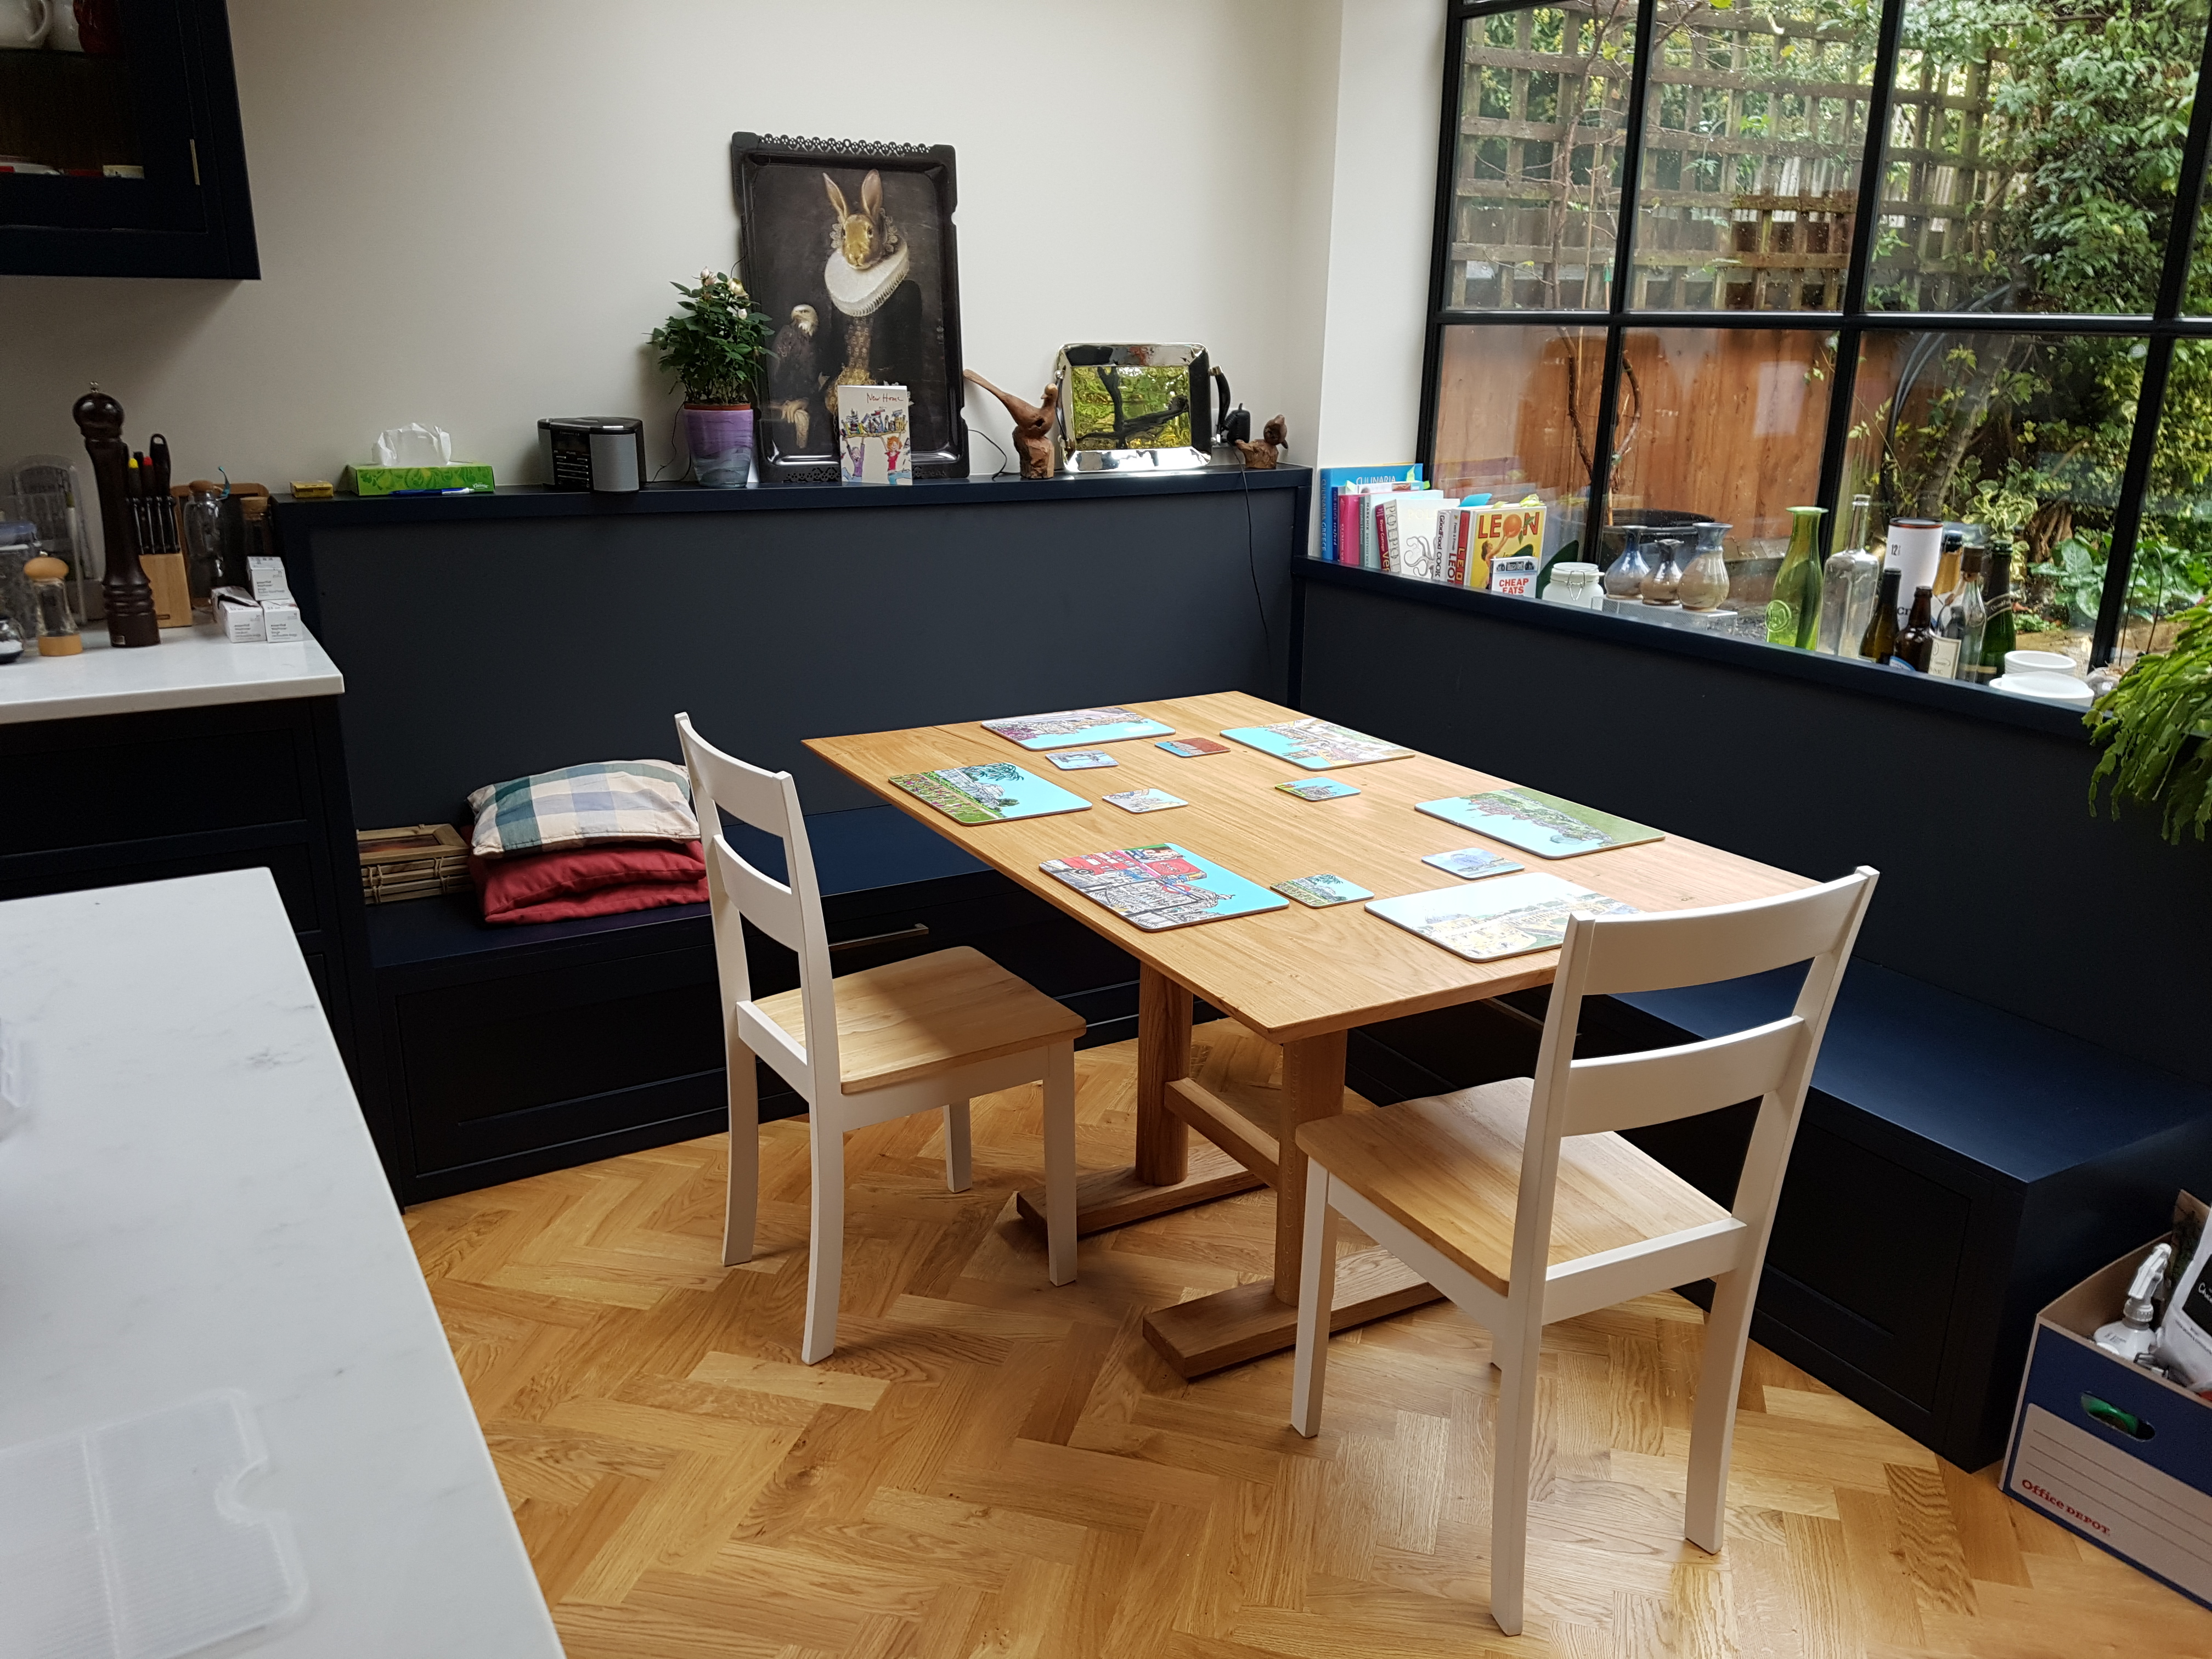 A Dining Table designed for small space